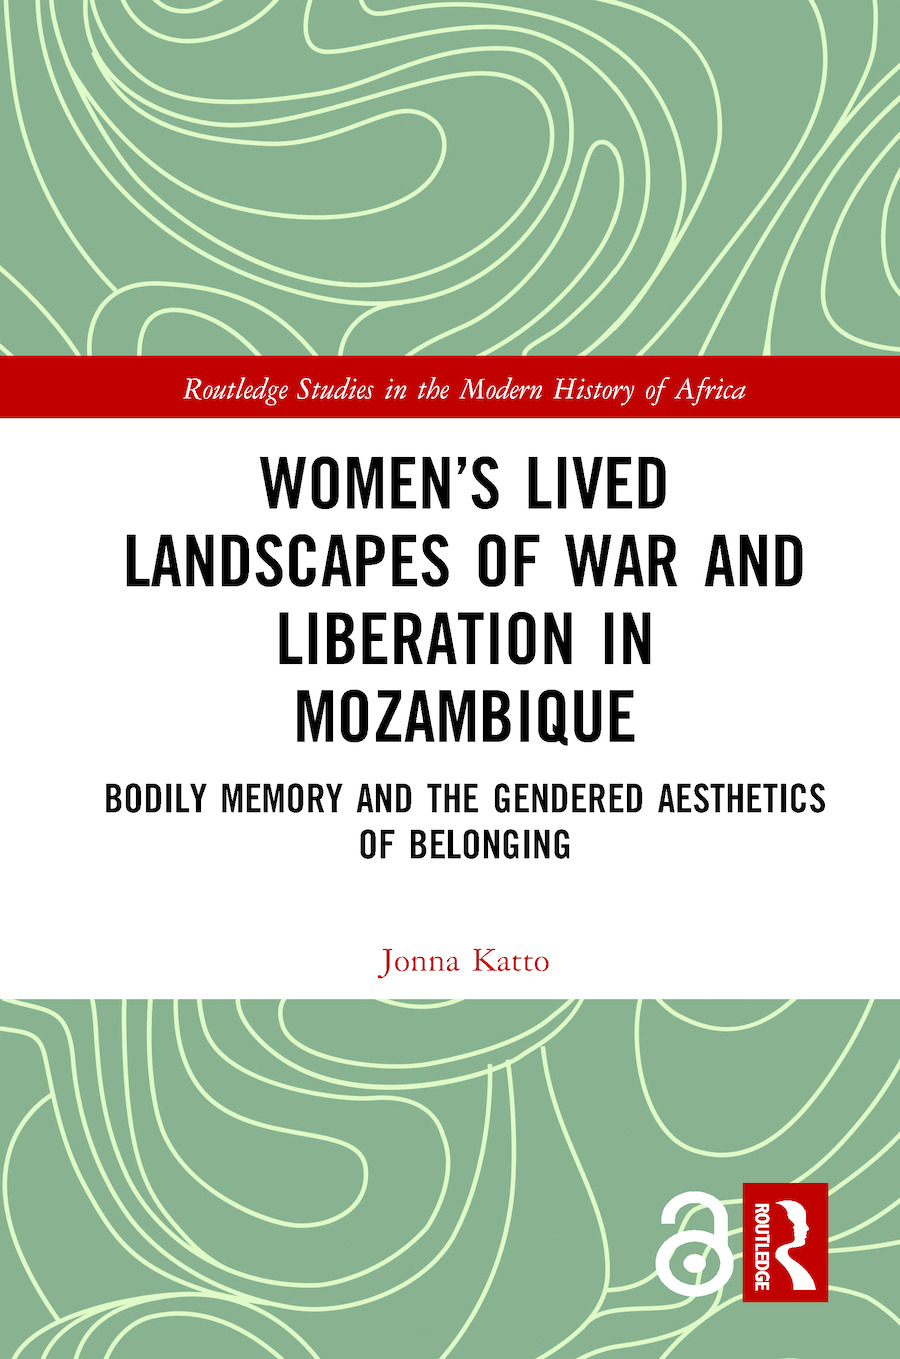 Women's Lived Landscapes of War and Liberation in Mozambique: Bodily Memory and the Gendered Aesthetics of Belonging book cover